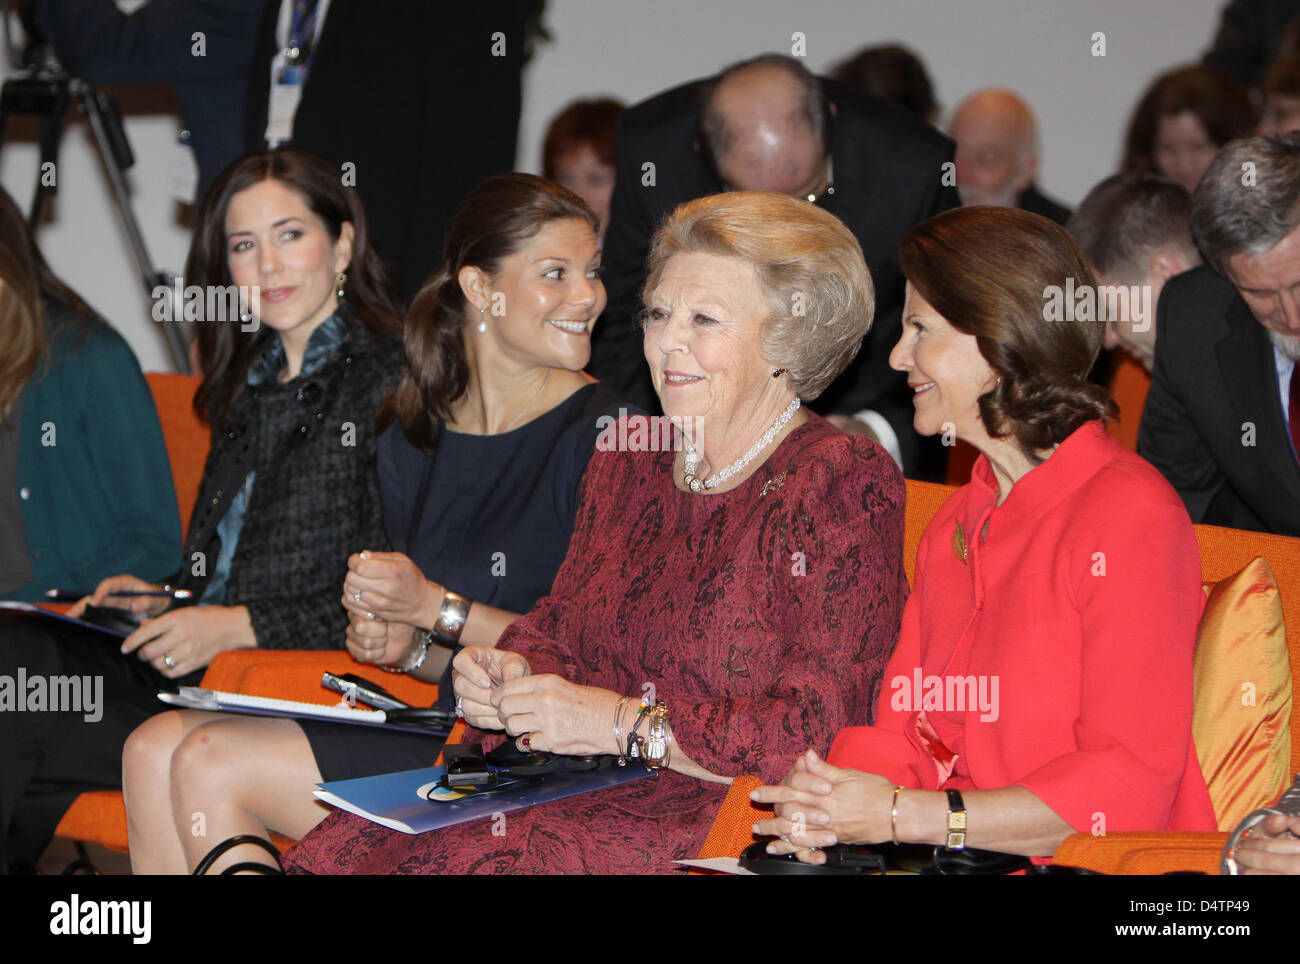 l-r-princess-mary-of-denmark-crown-princess-victoria-of-sweden-queen-D4TP49.jpg